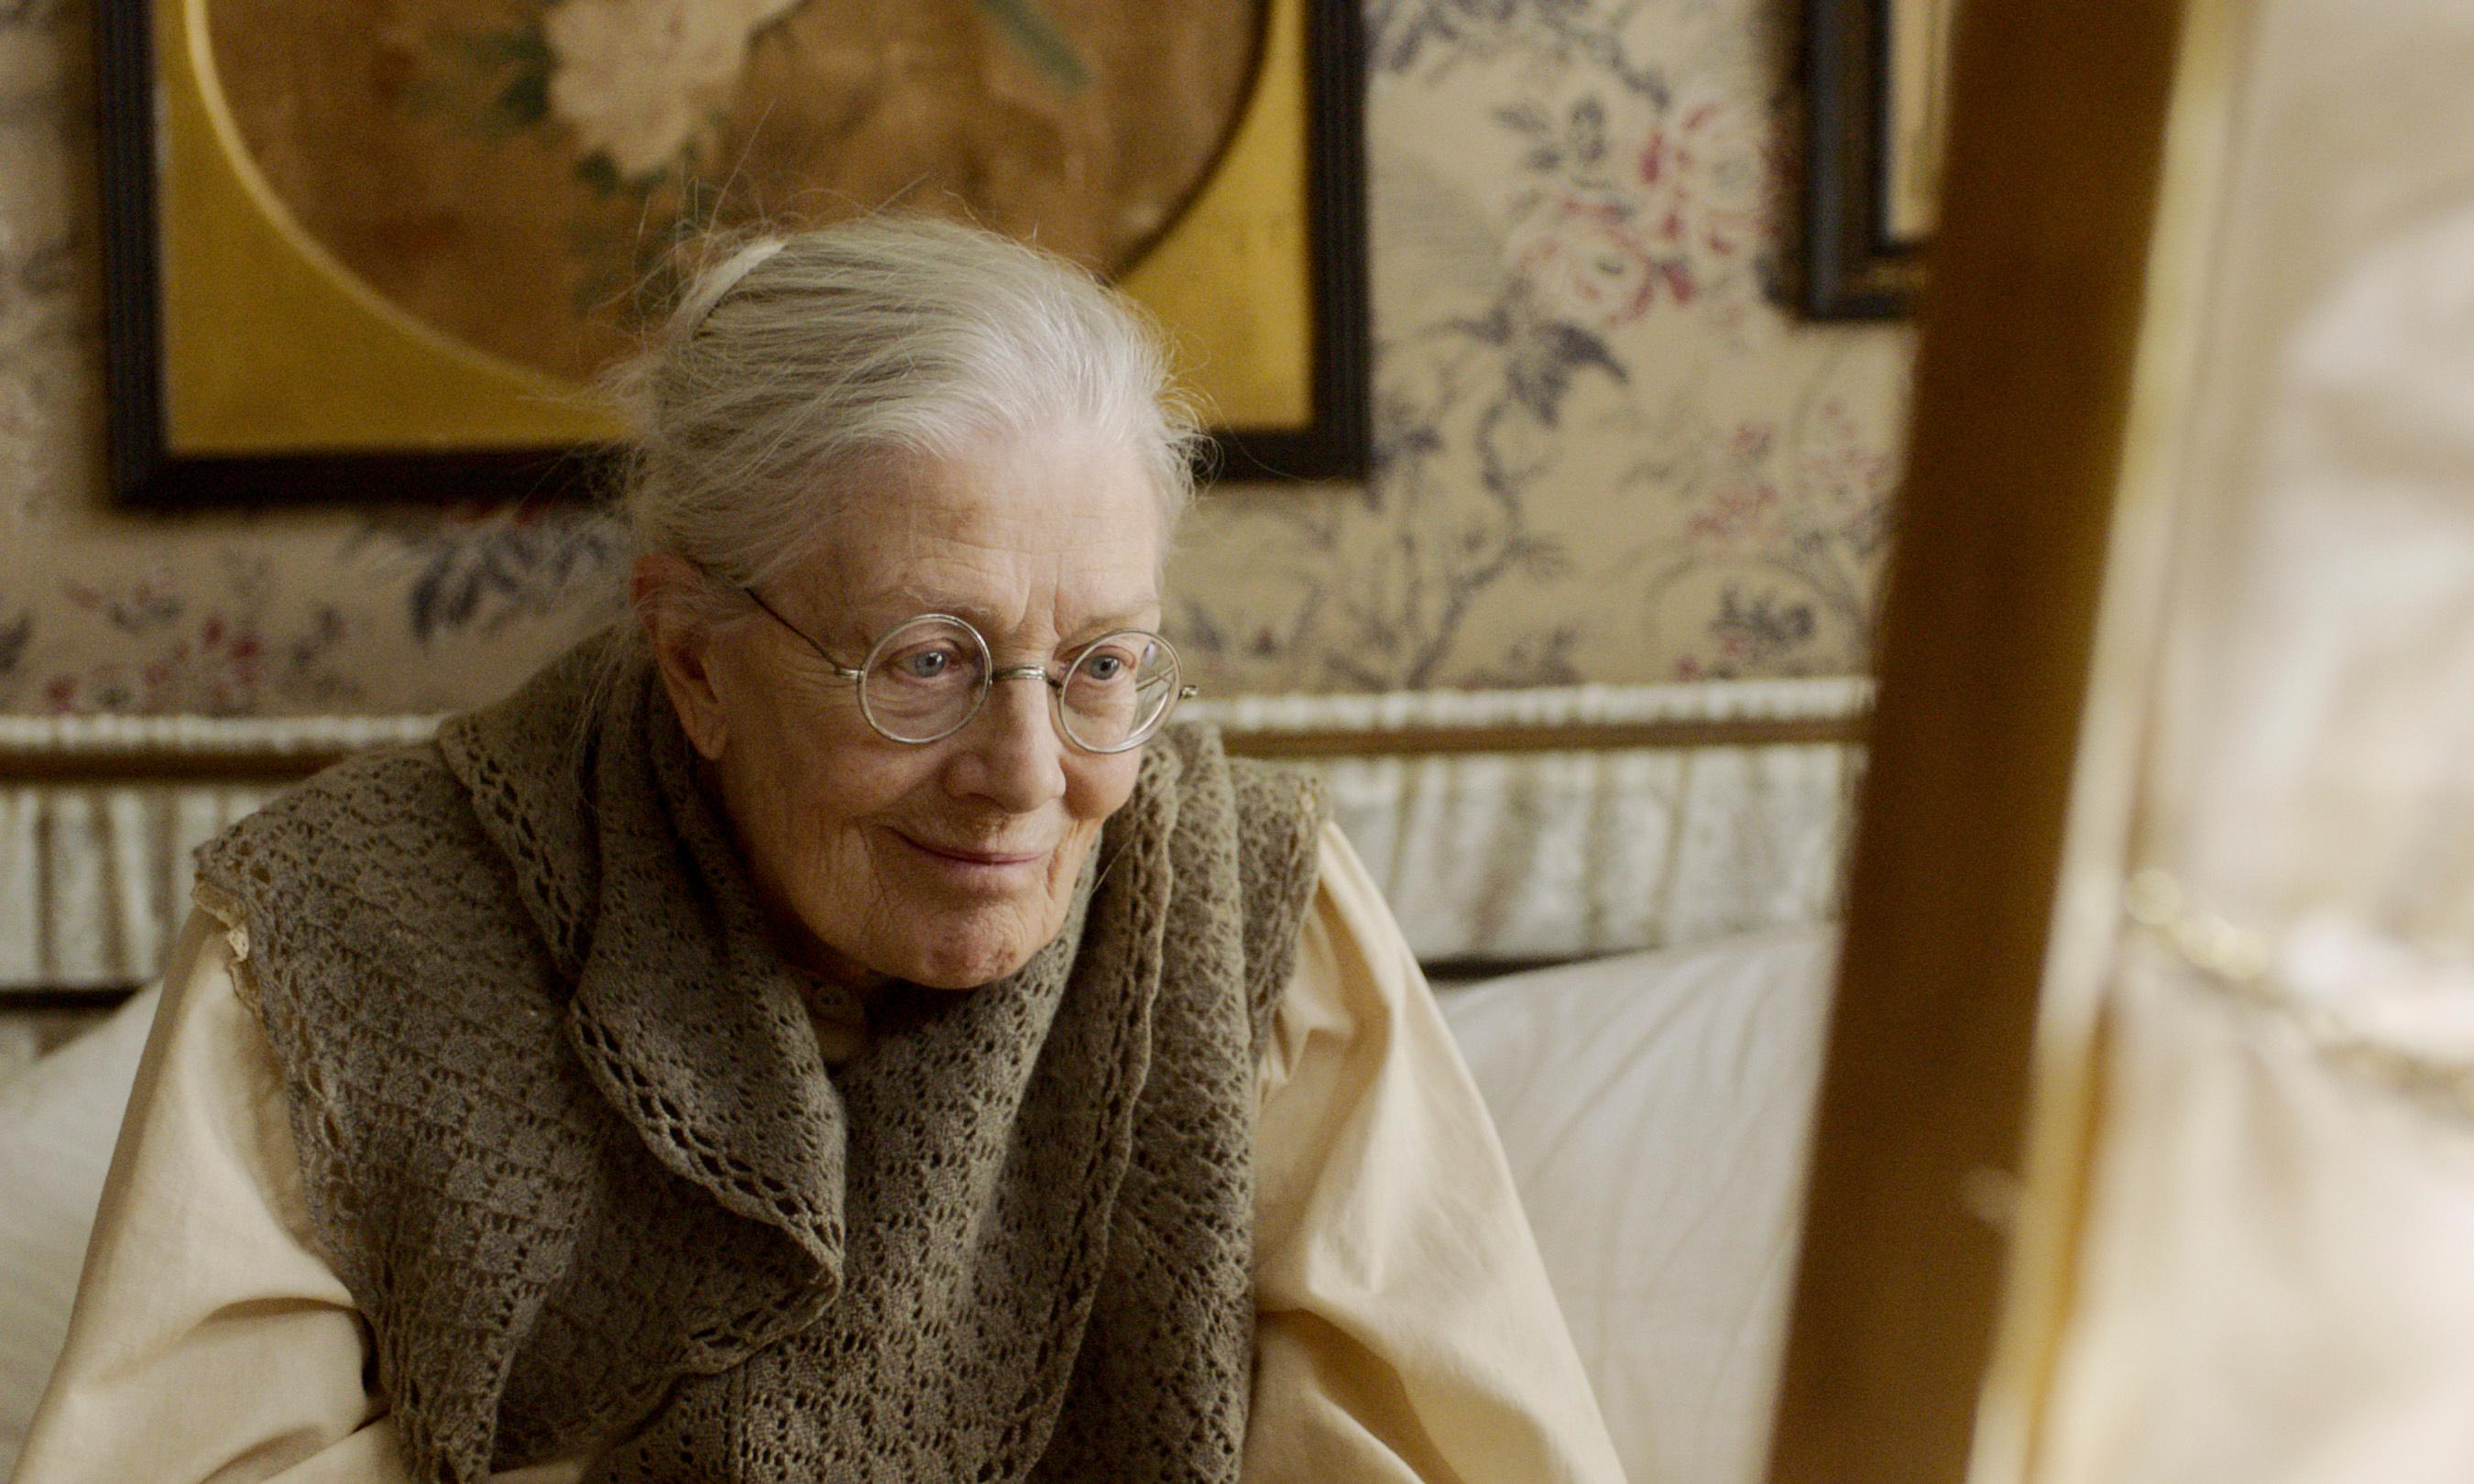 Mrs Lowry & Son review – a prim portrait of the artist